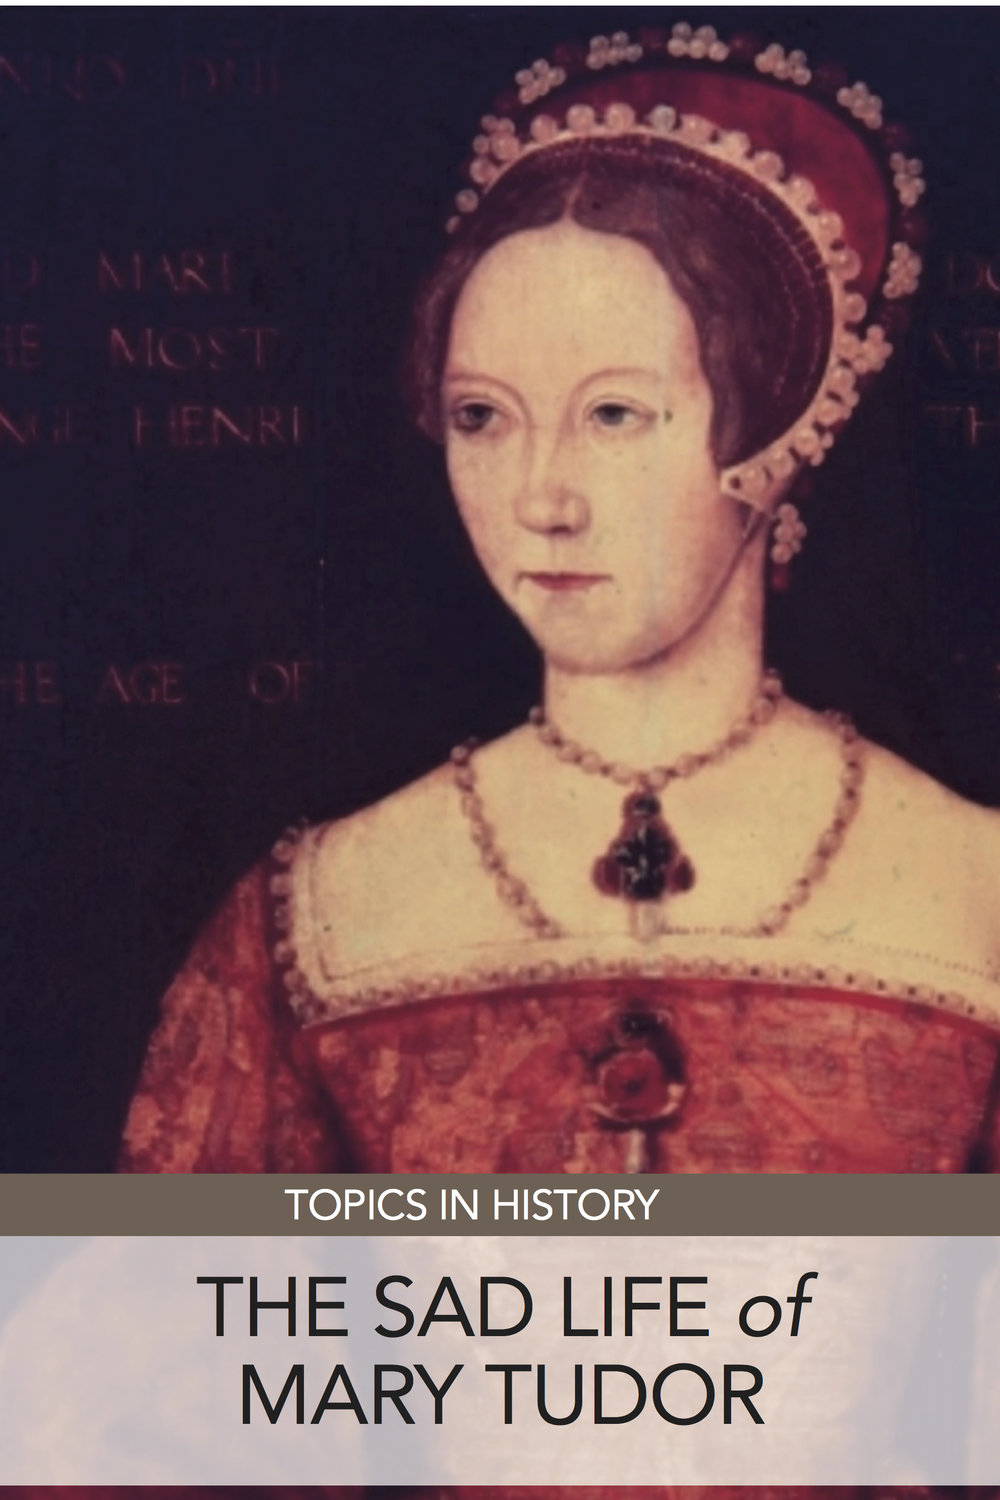 I will geek out over the Tudors any time, so I love this Tudor history book list focused on Mary Tudor. I want to do this as a unit study when we do high school world history. #homeschool